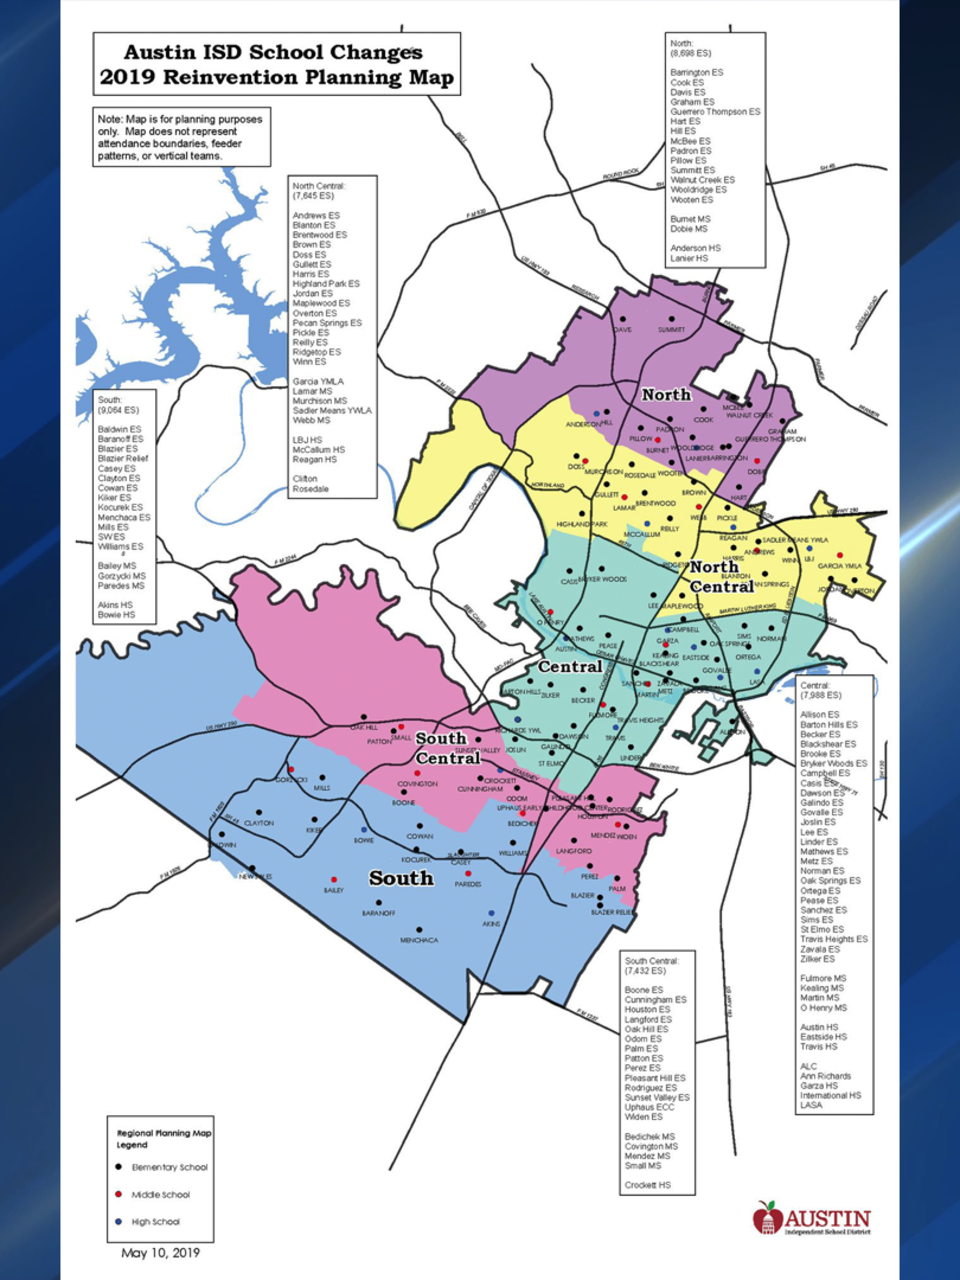 austin isd district map Austin Isd Releases Final Map Of School Changes Which Could austin isd district map